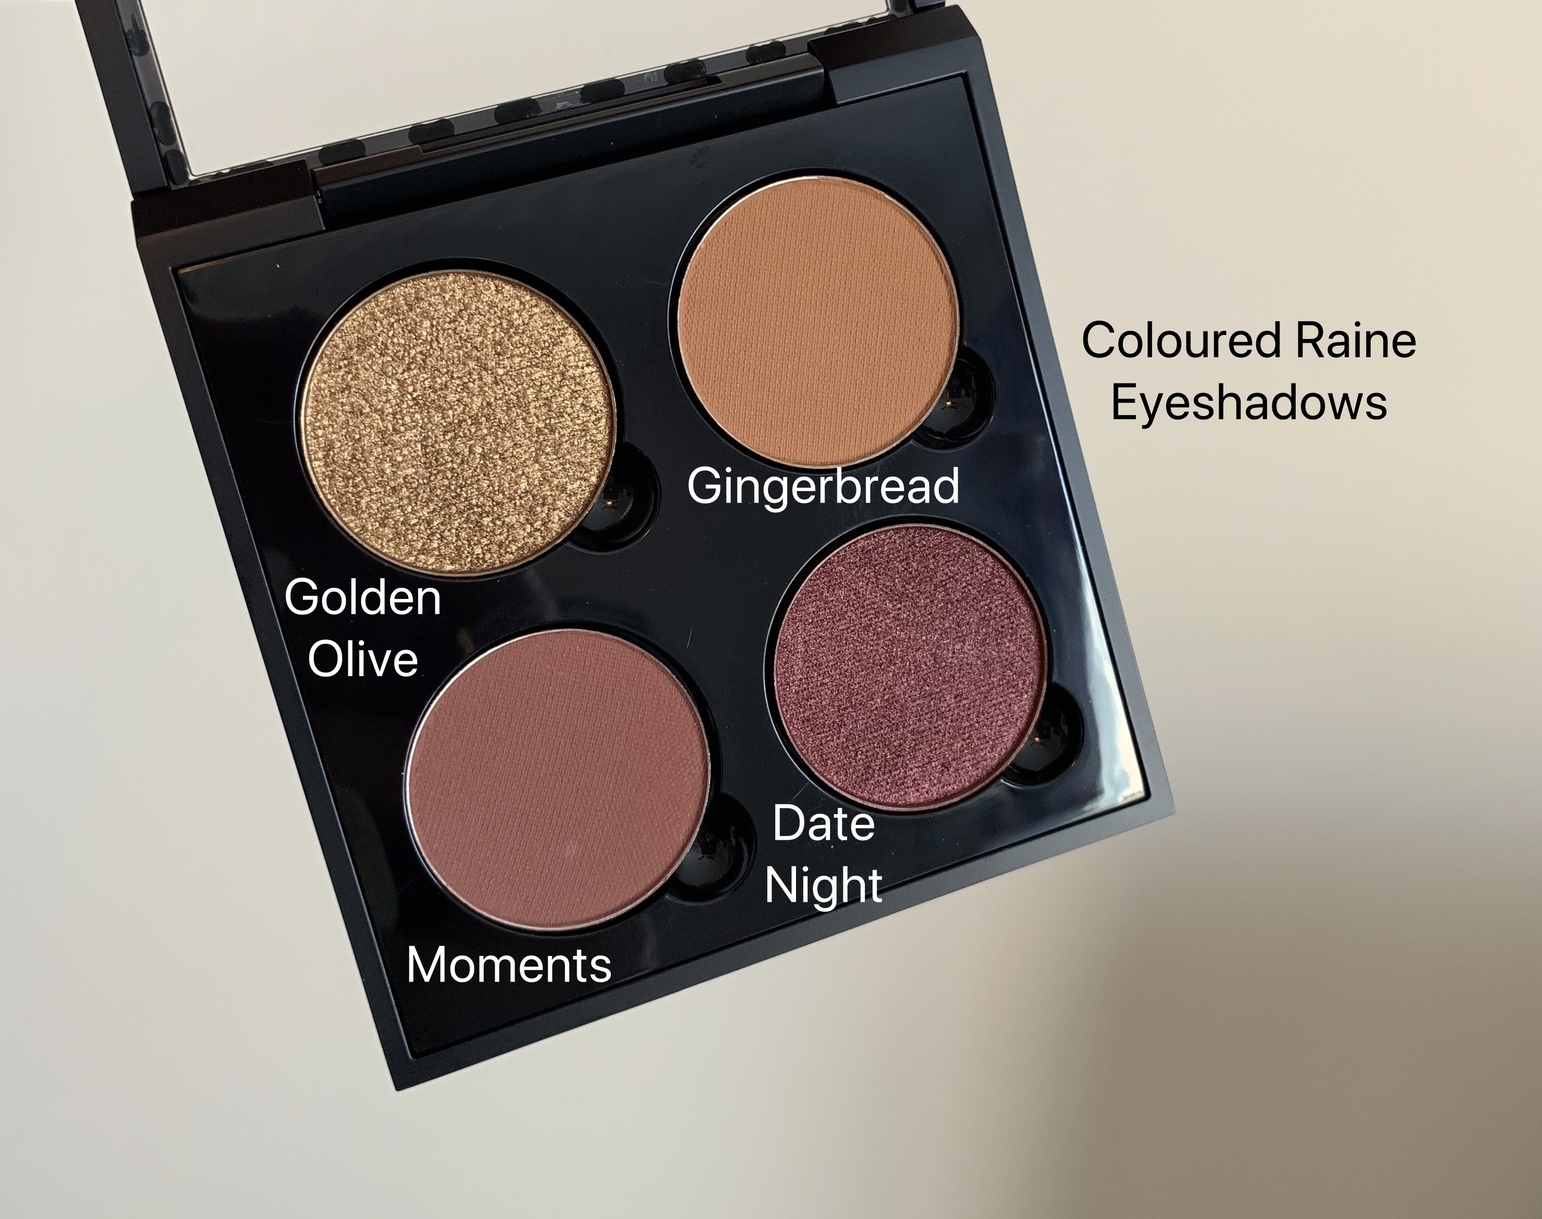 Coloured Raine Single Eyeshadows (golden olive, gingerbread, moments, date night)